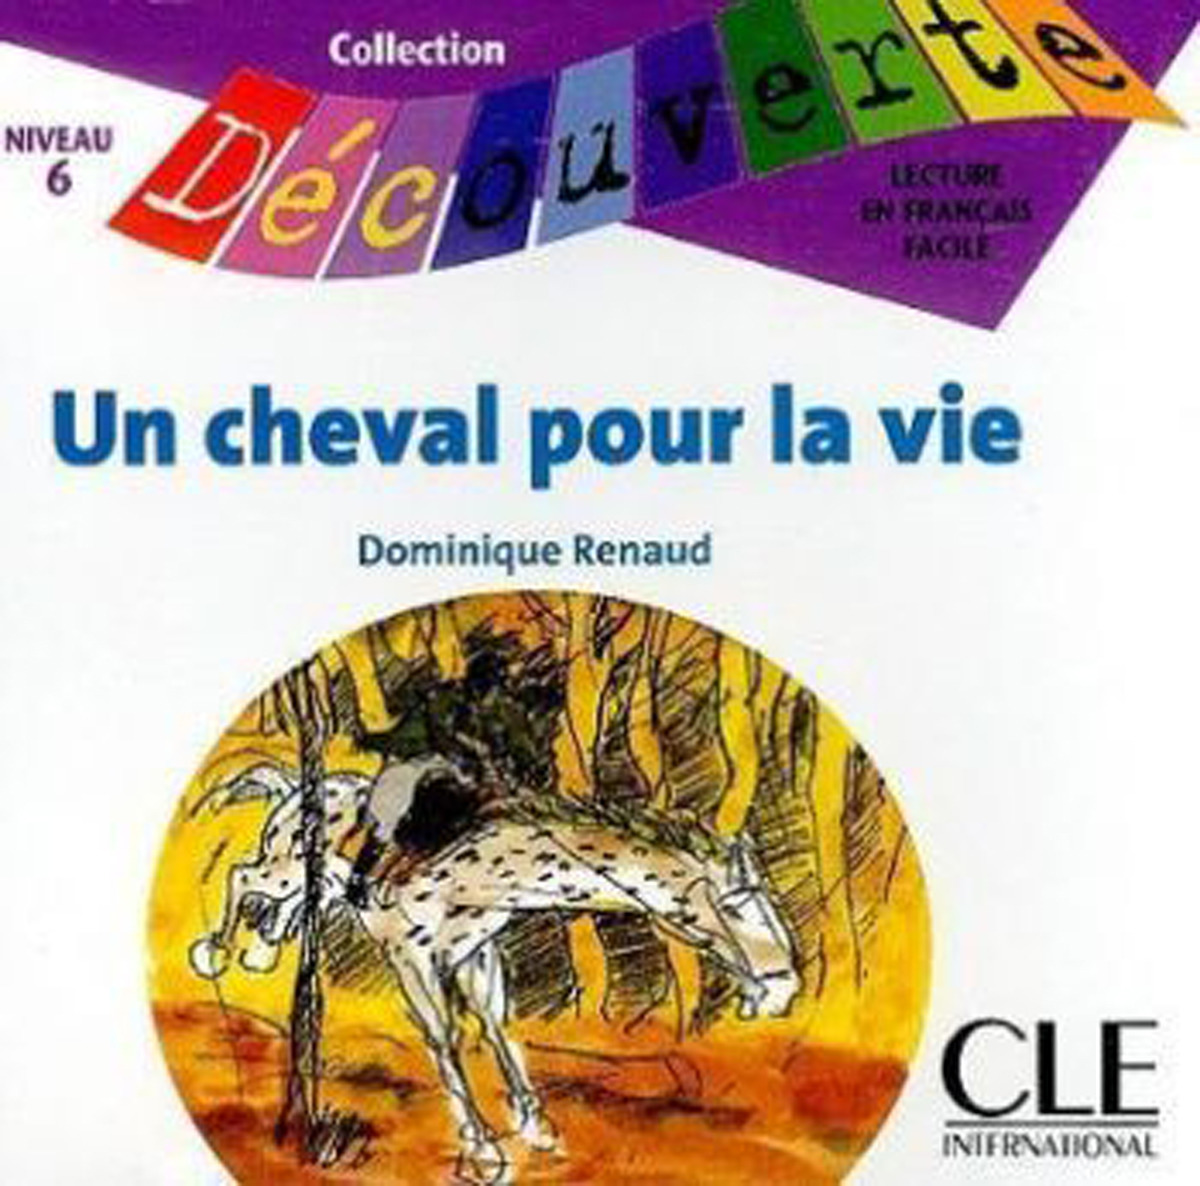 Un cheval pour la vie CD Only (Level 6)